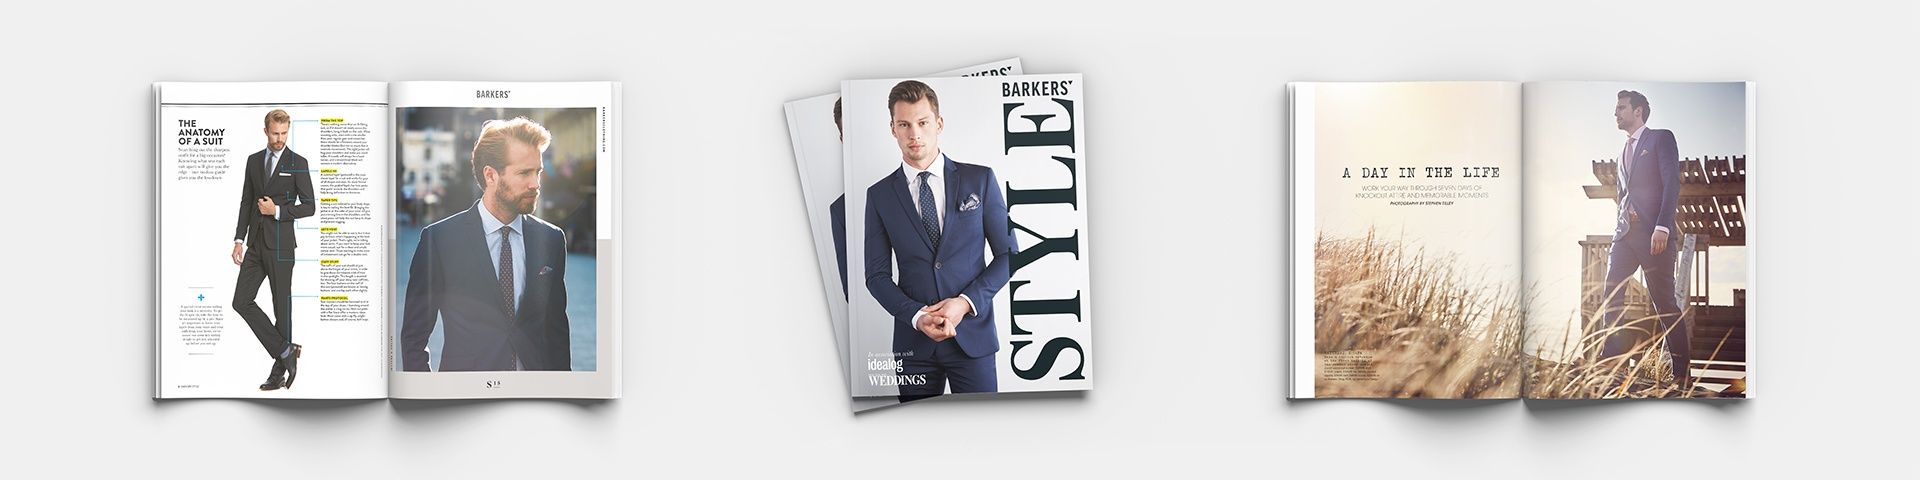 The Barkers Style Journal